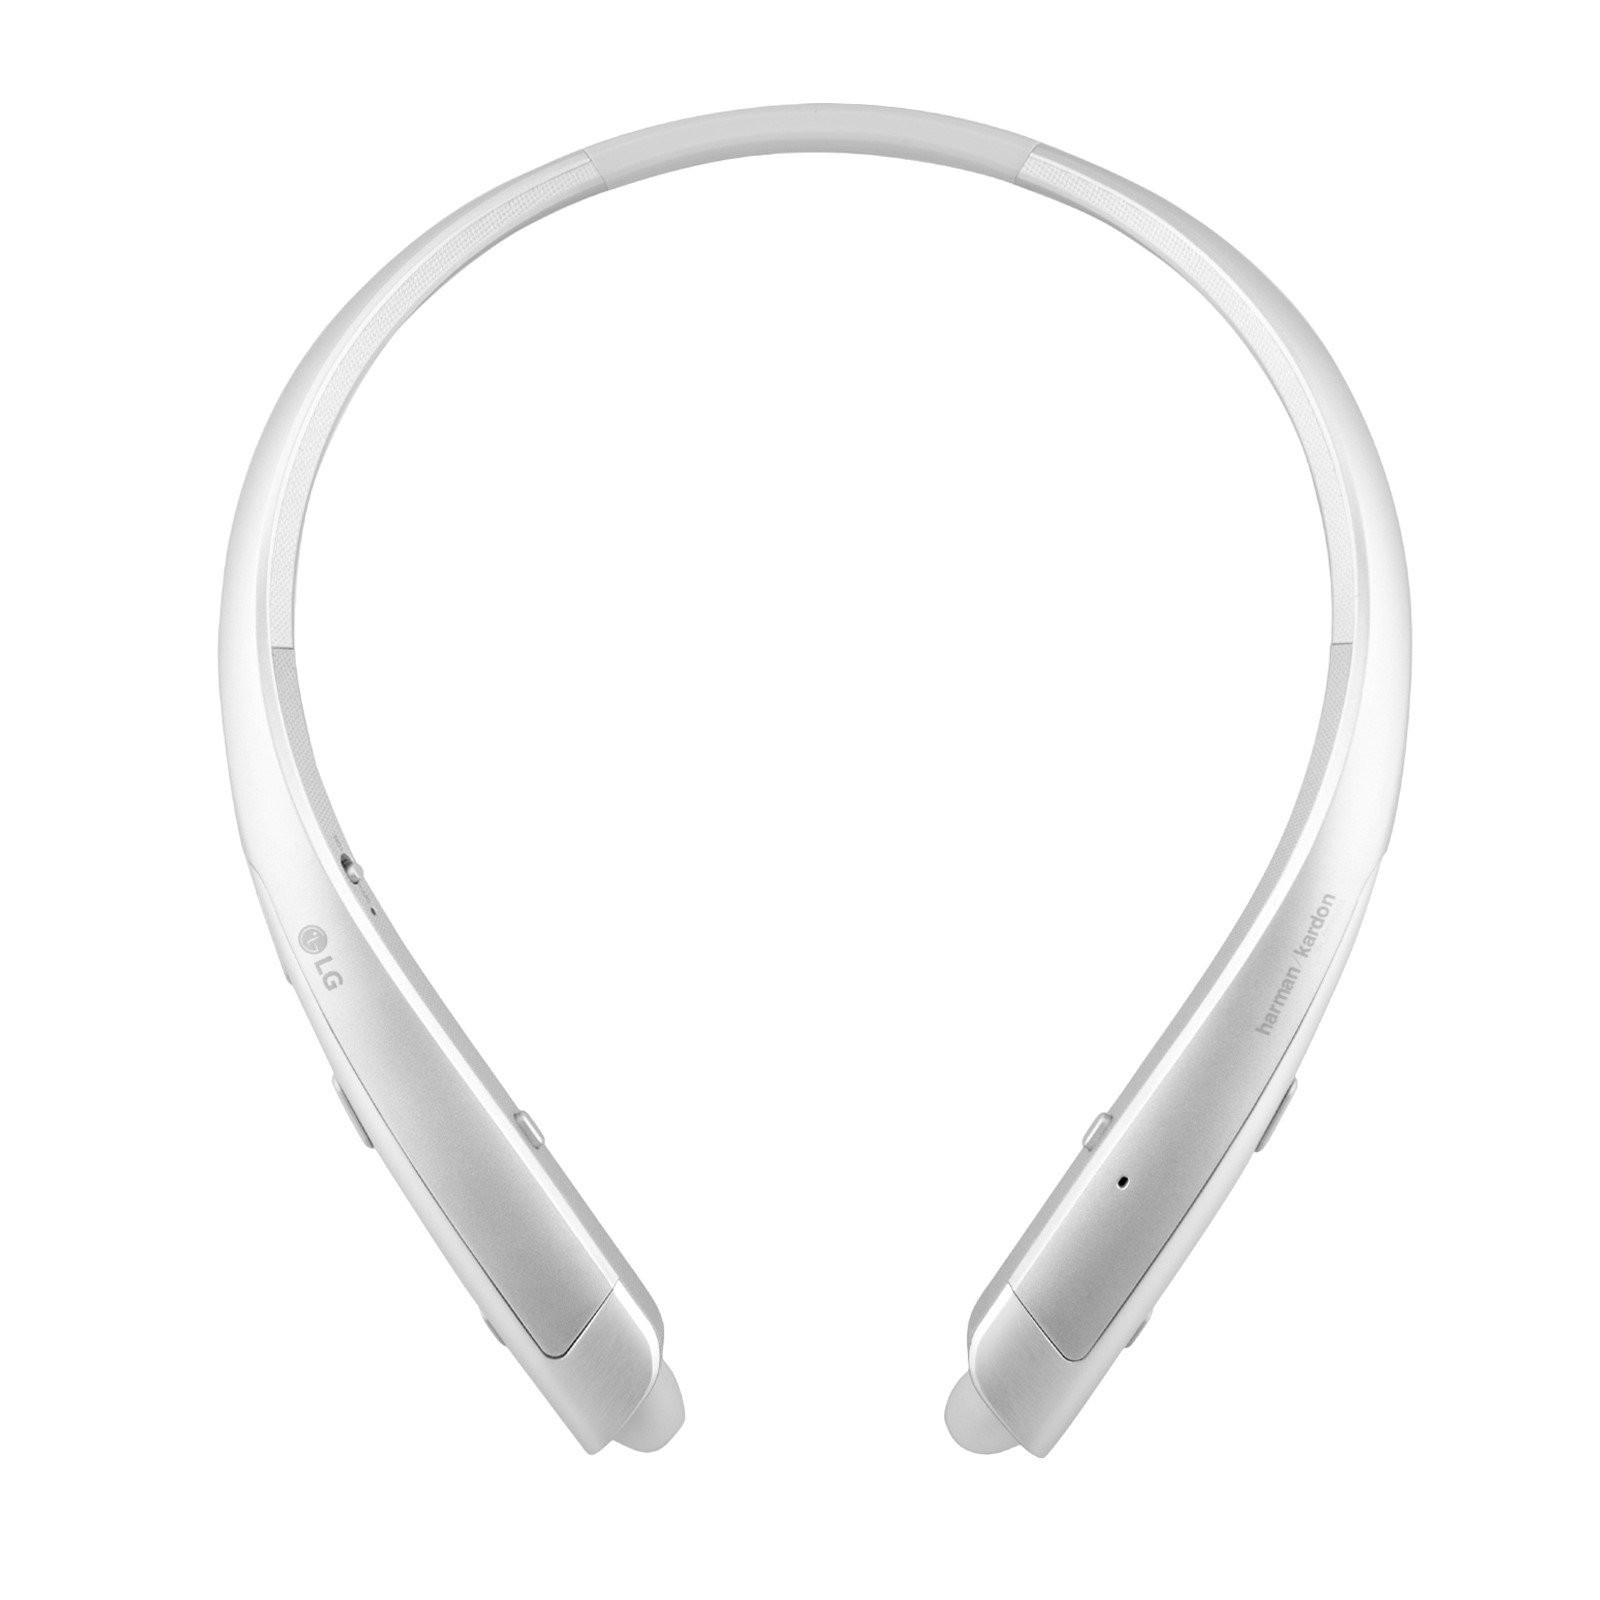 LG HBS-1100 Bluetooth Stereo Headset